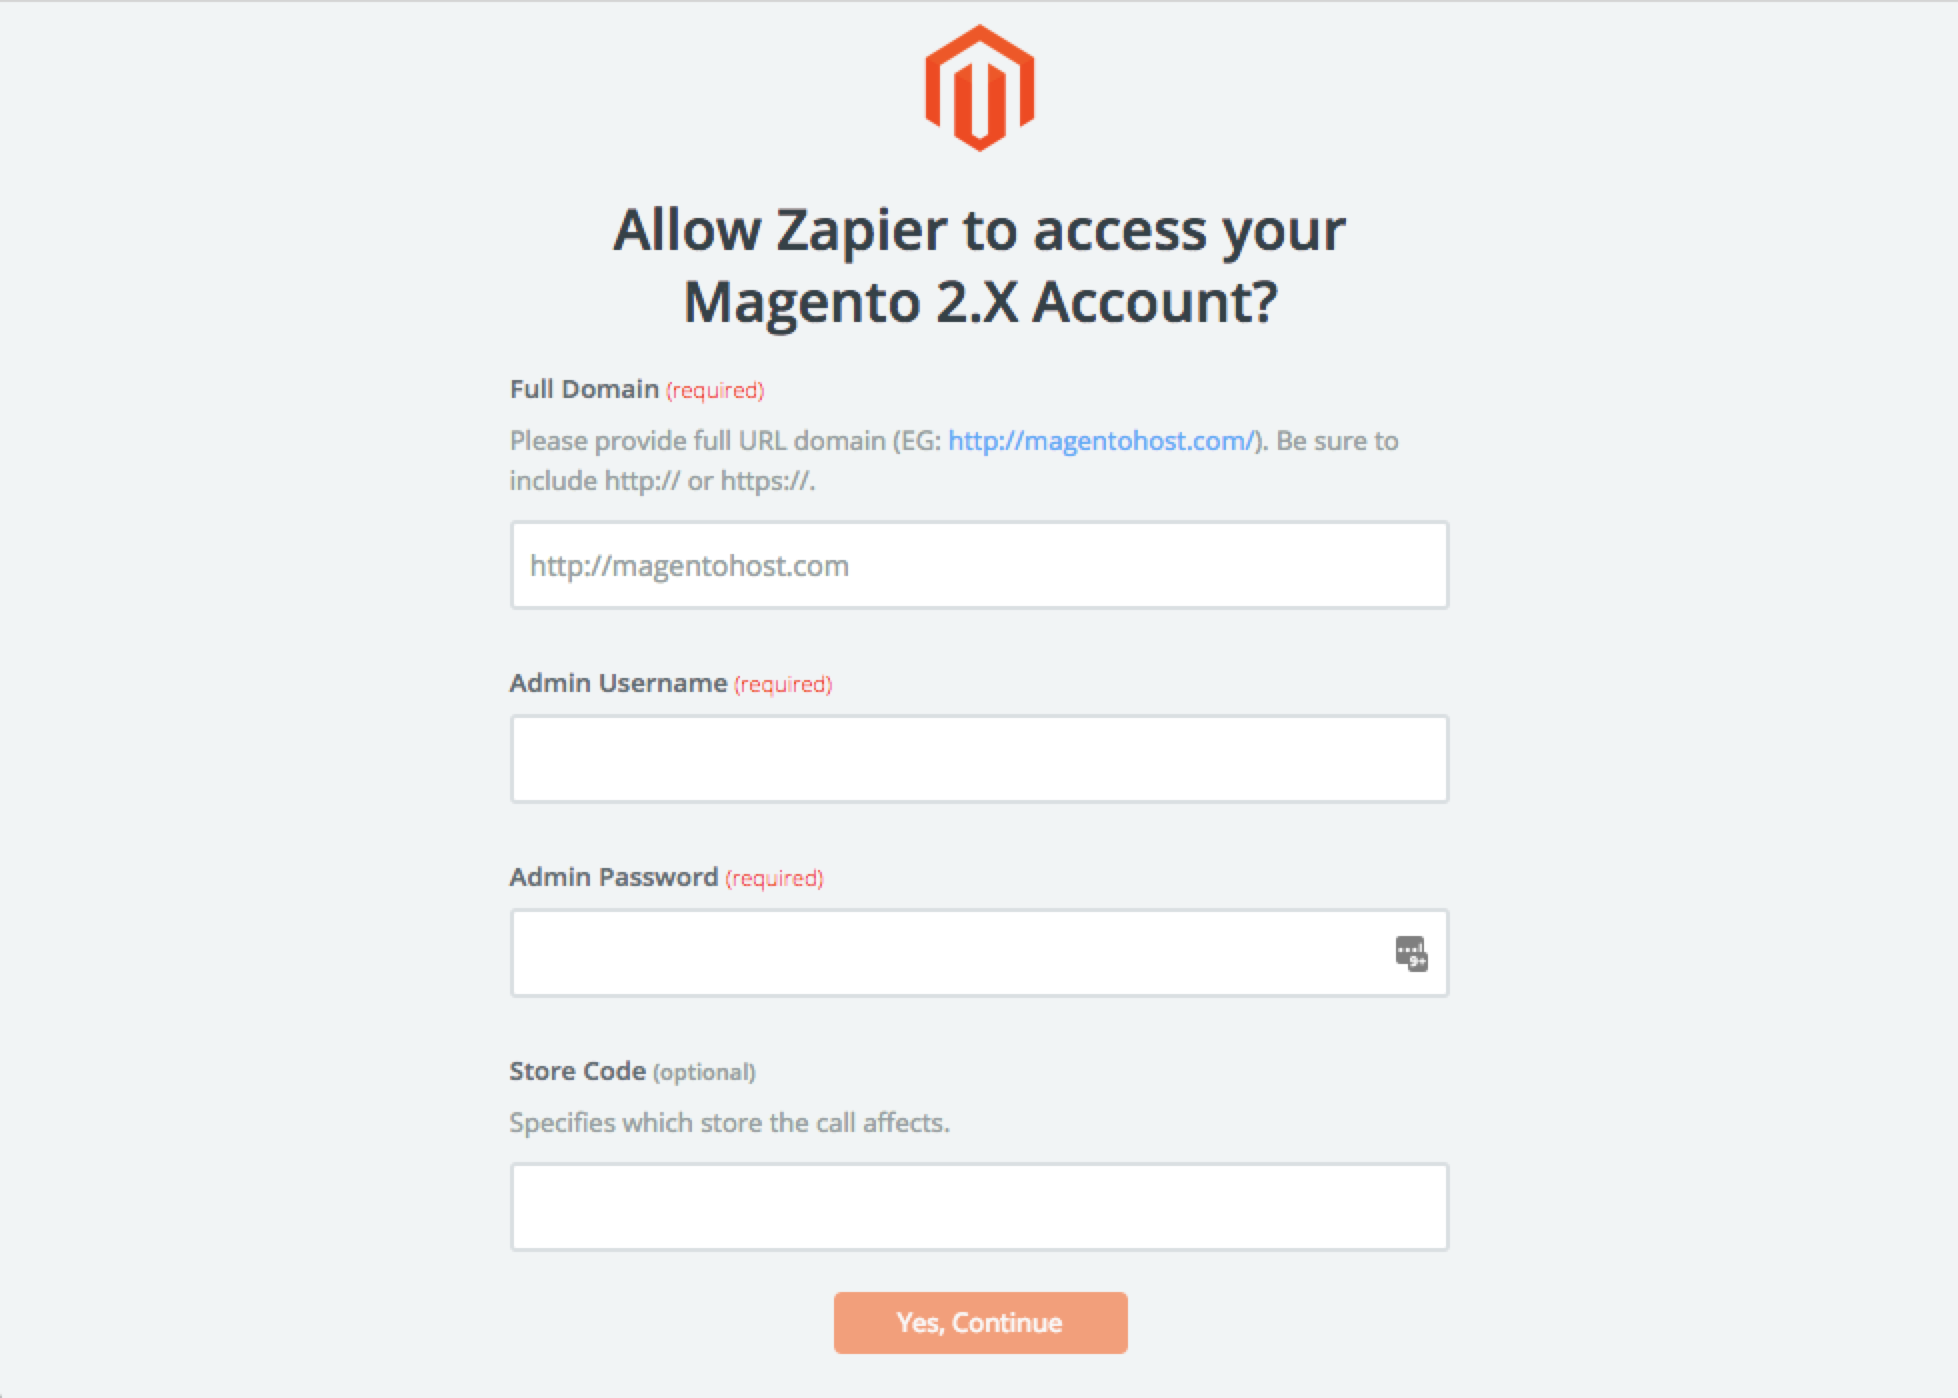 Magento 2 X - Integration Help & Support | Zapier